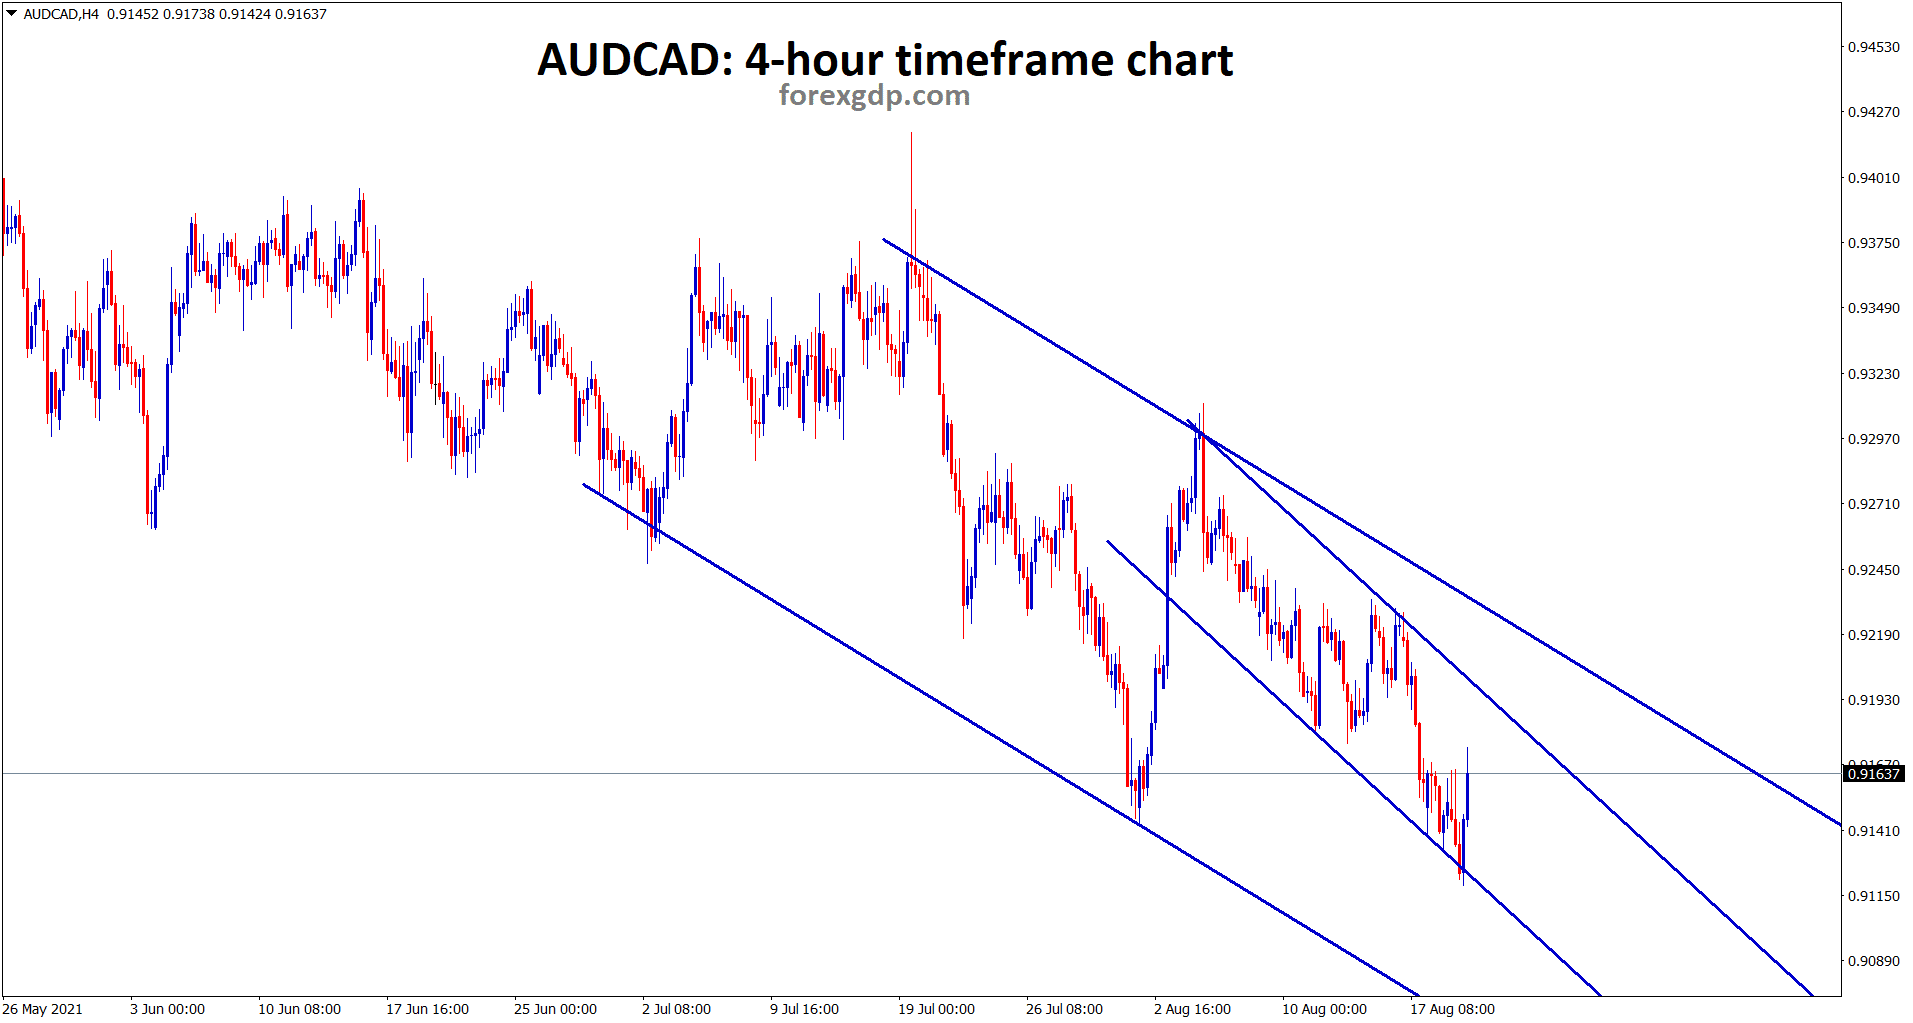 AUDCAD is bouncing back from the minor descending channel